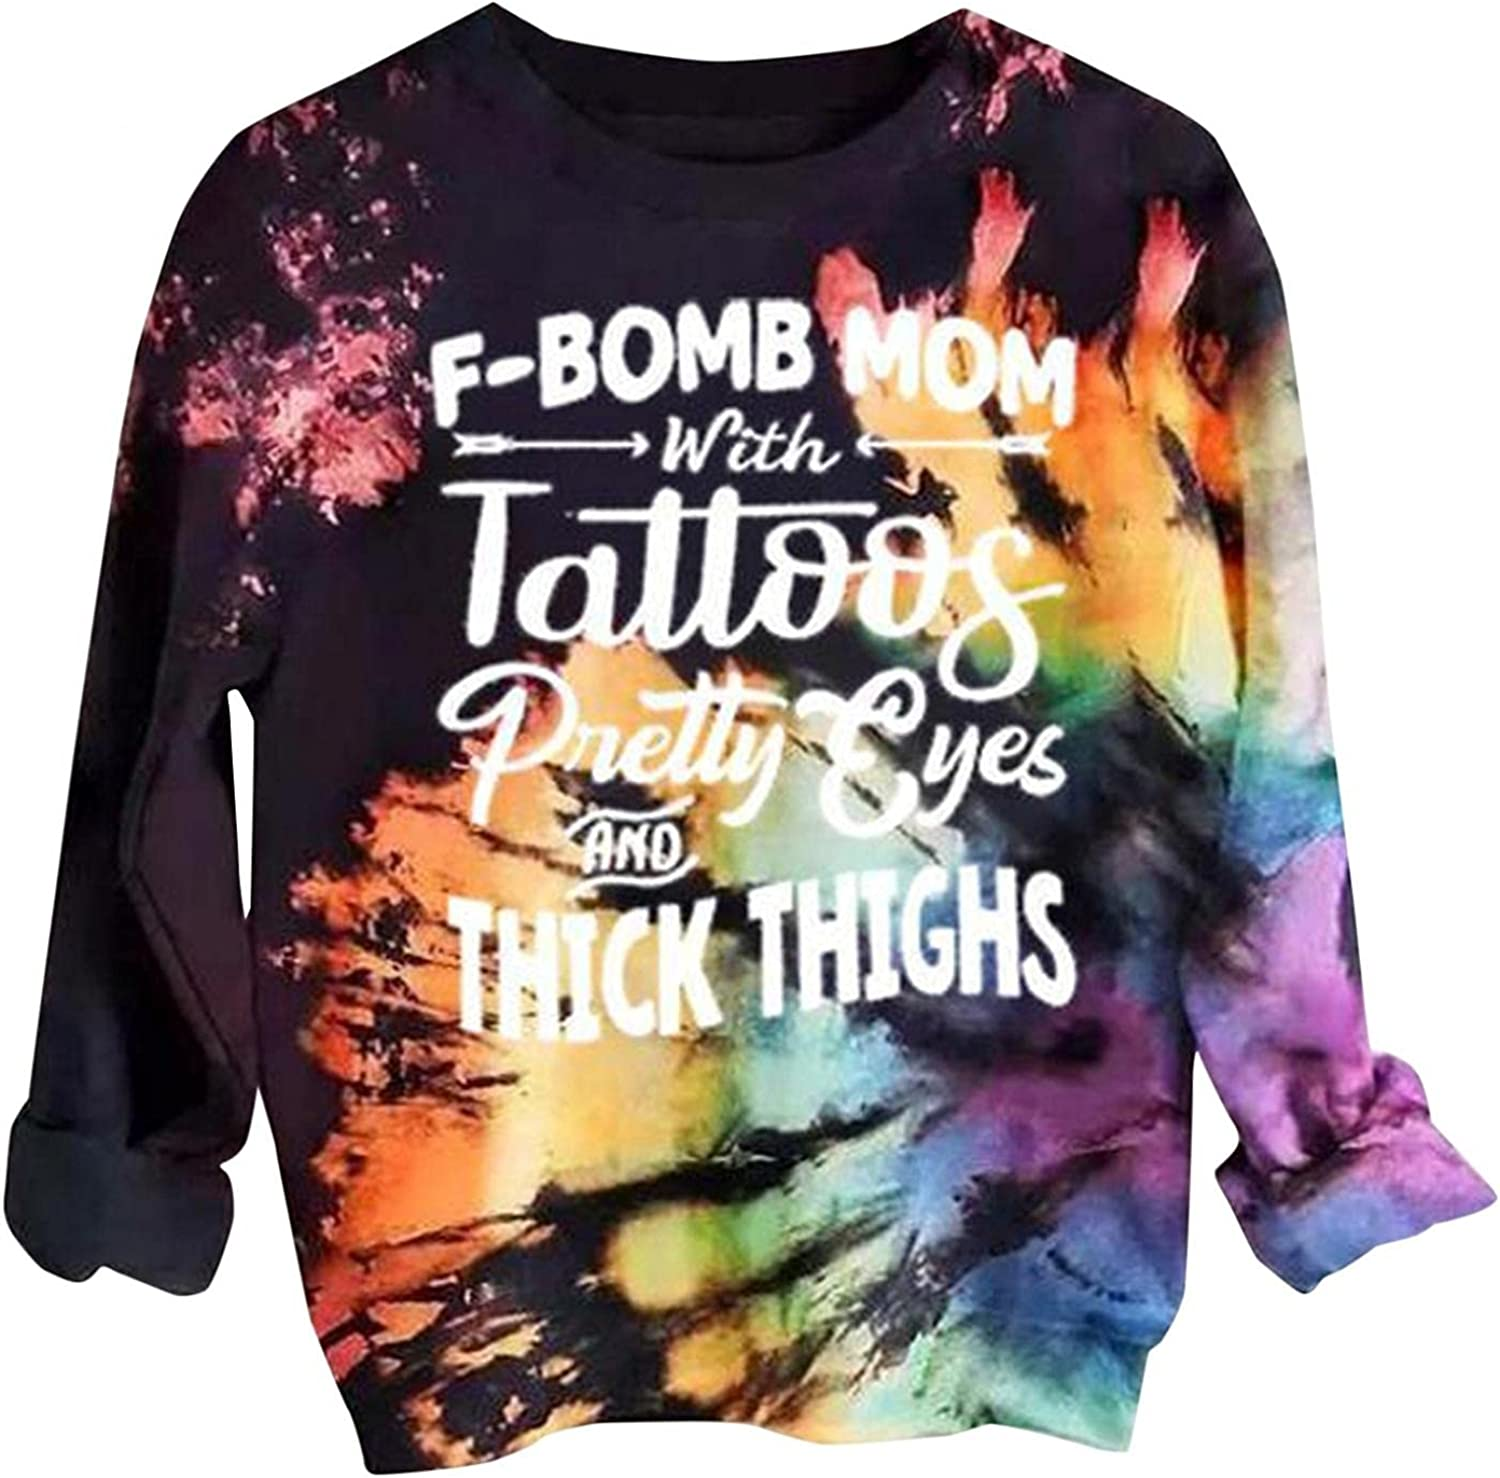 AODONG Sweatshirt for Women Halloween Tie Dye Rainbow O-Neck Comfy Loose Fit Tops Long Sleeves Pullover Shirts